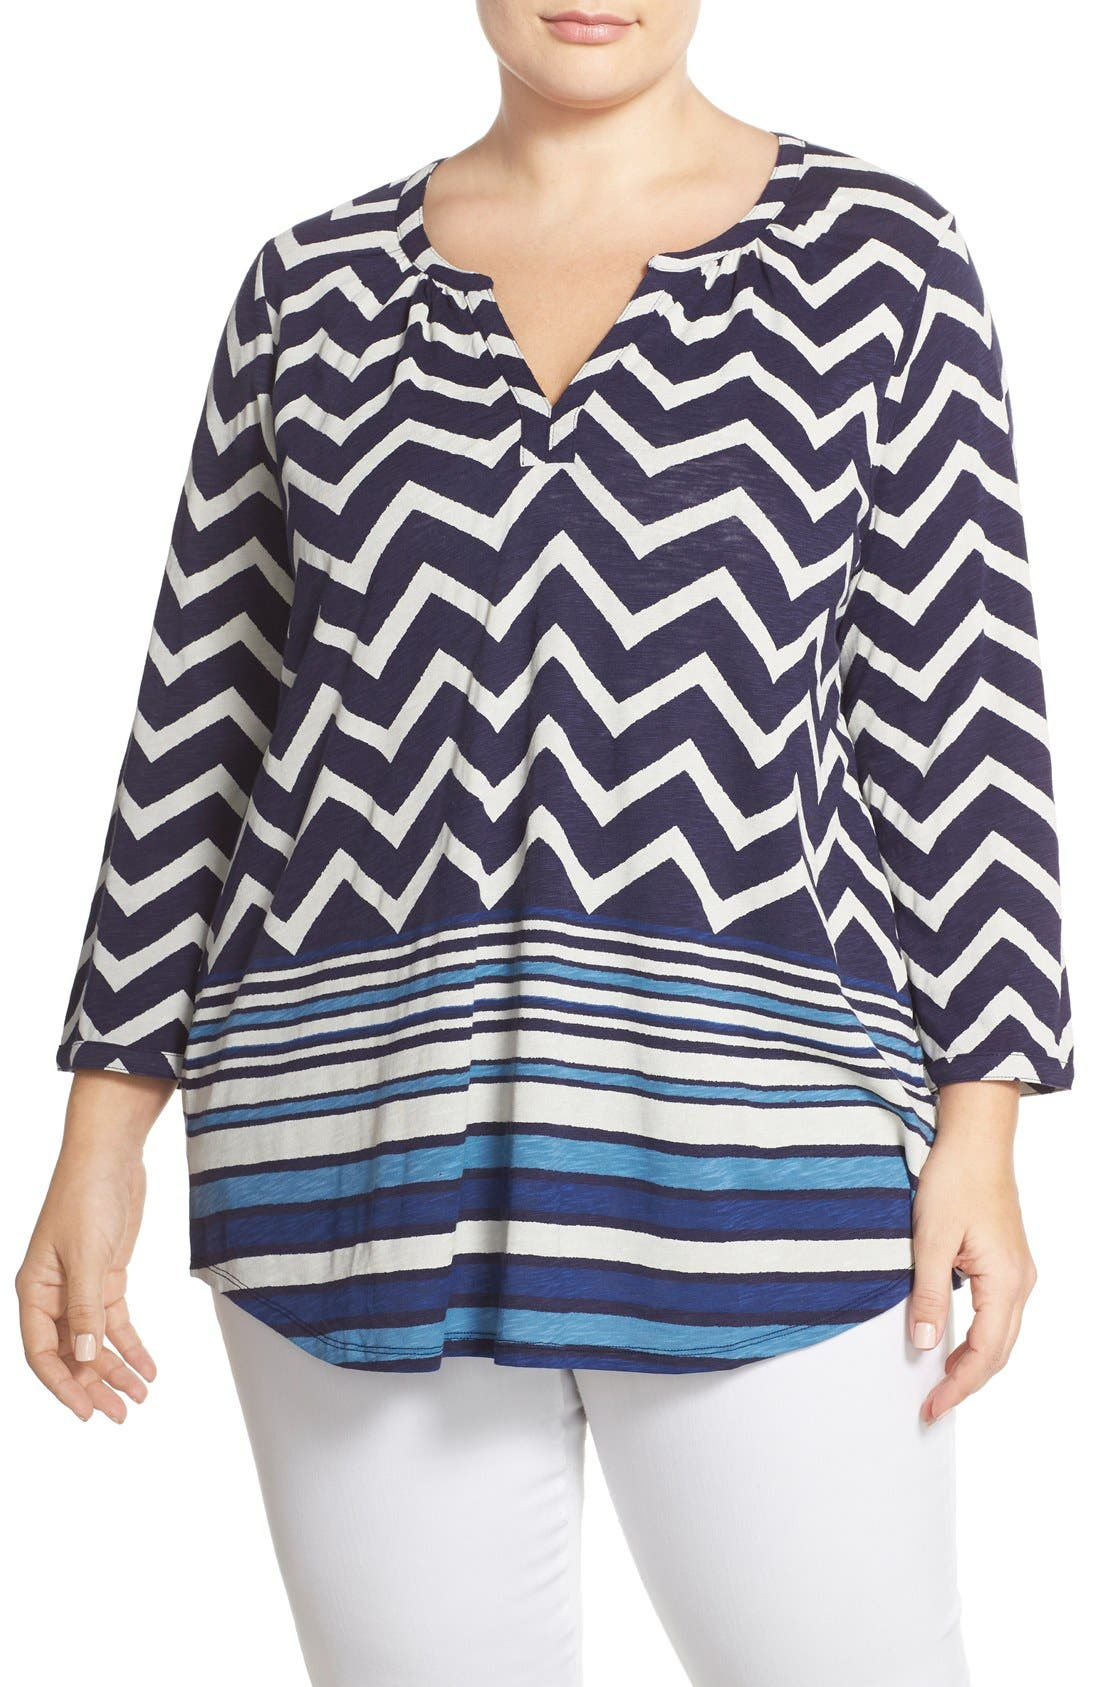 LUCKY BRAND Chevron Stripe Split Neck Top, Main, color, 400